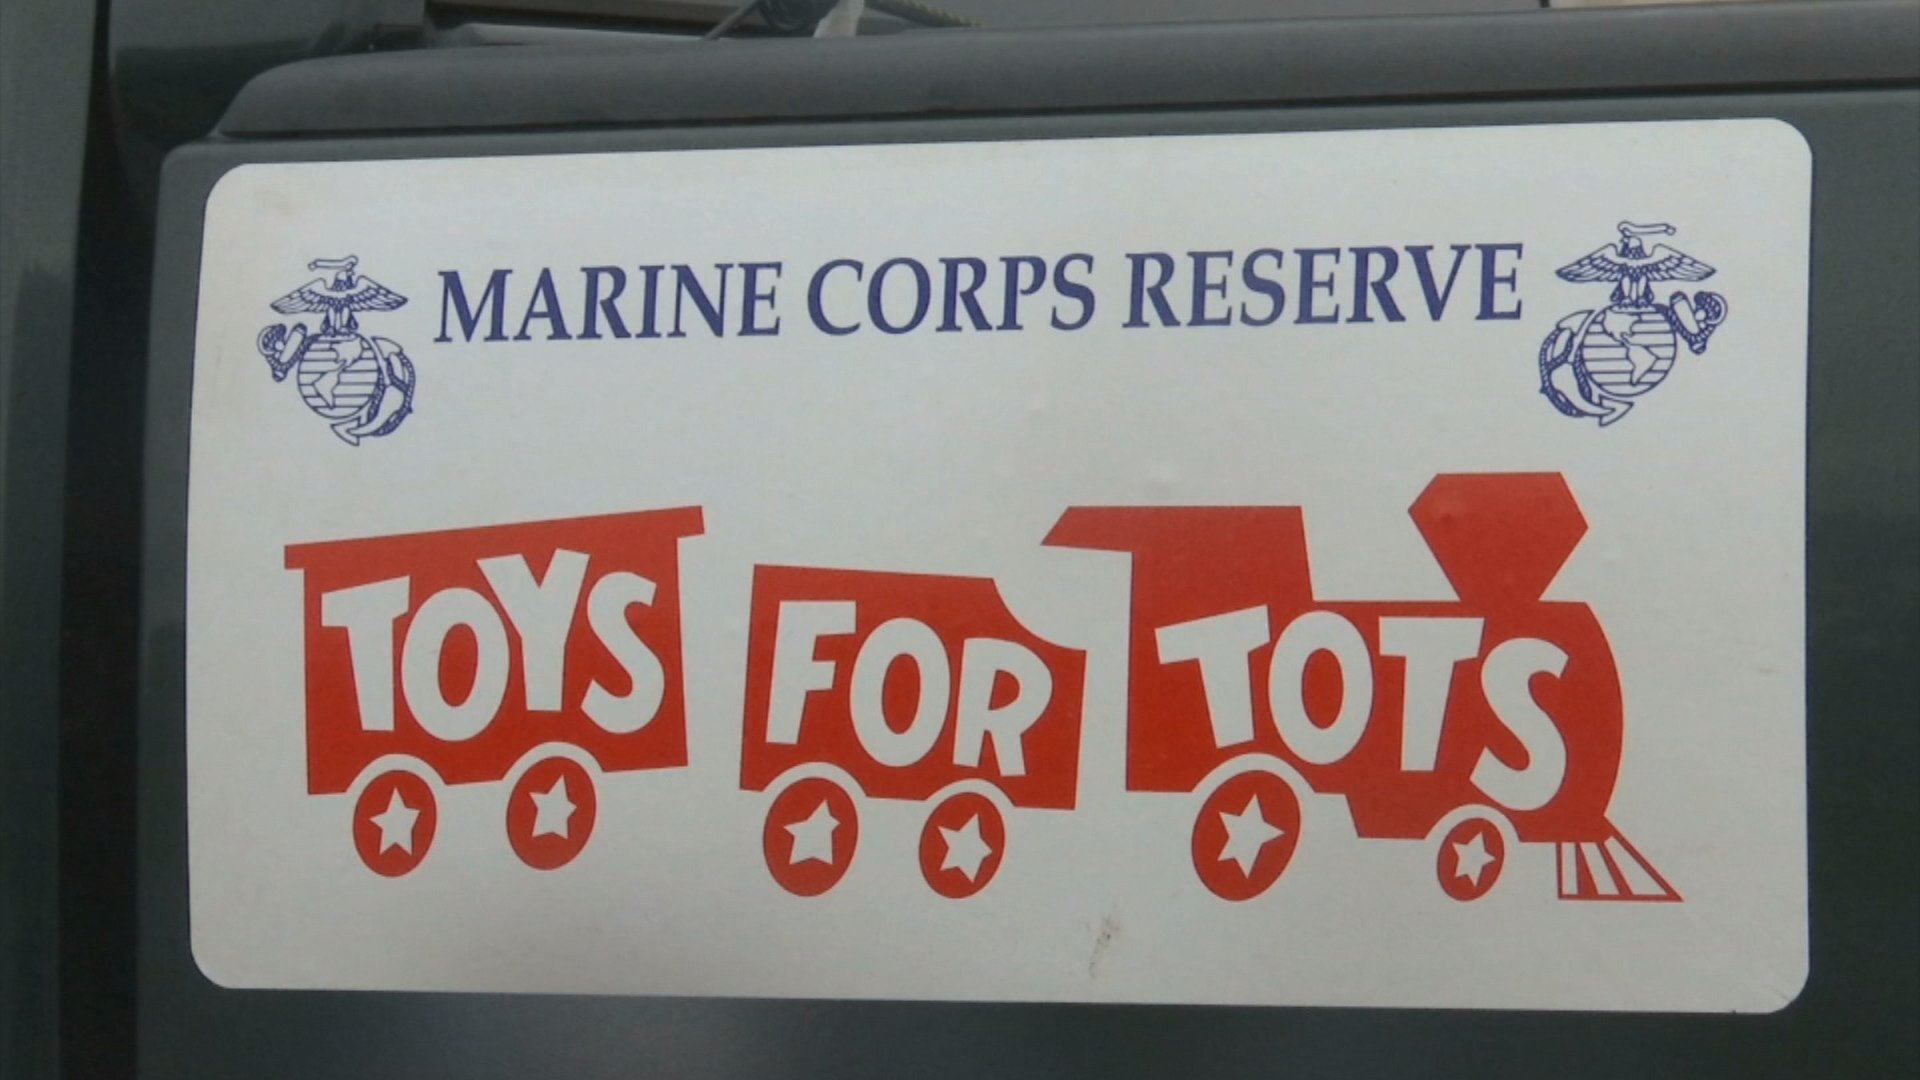 Work begins to collect toys for children in need throughout Western Washington